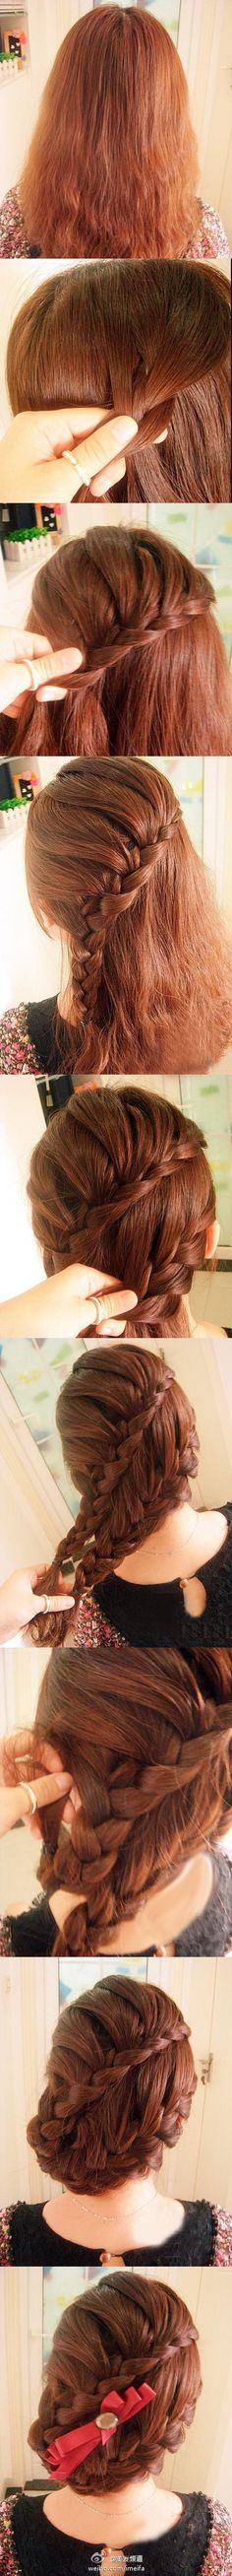 Double lace braid